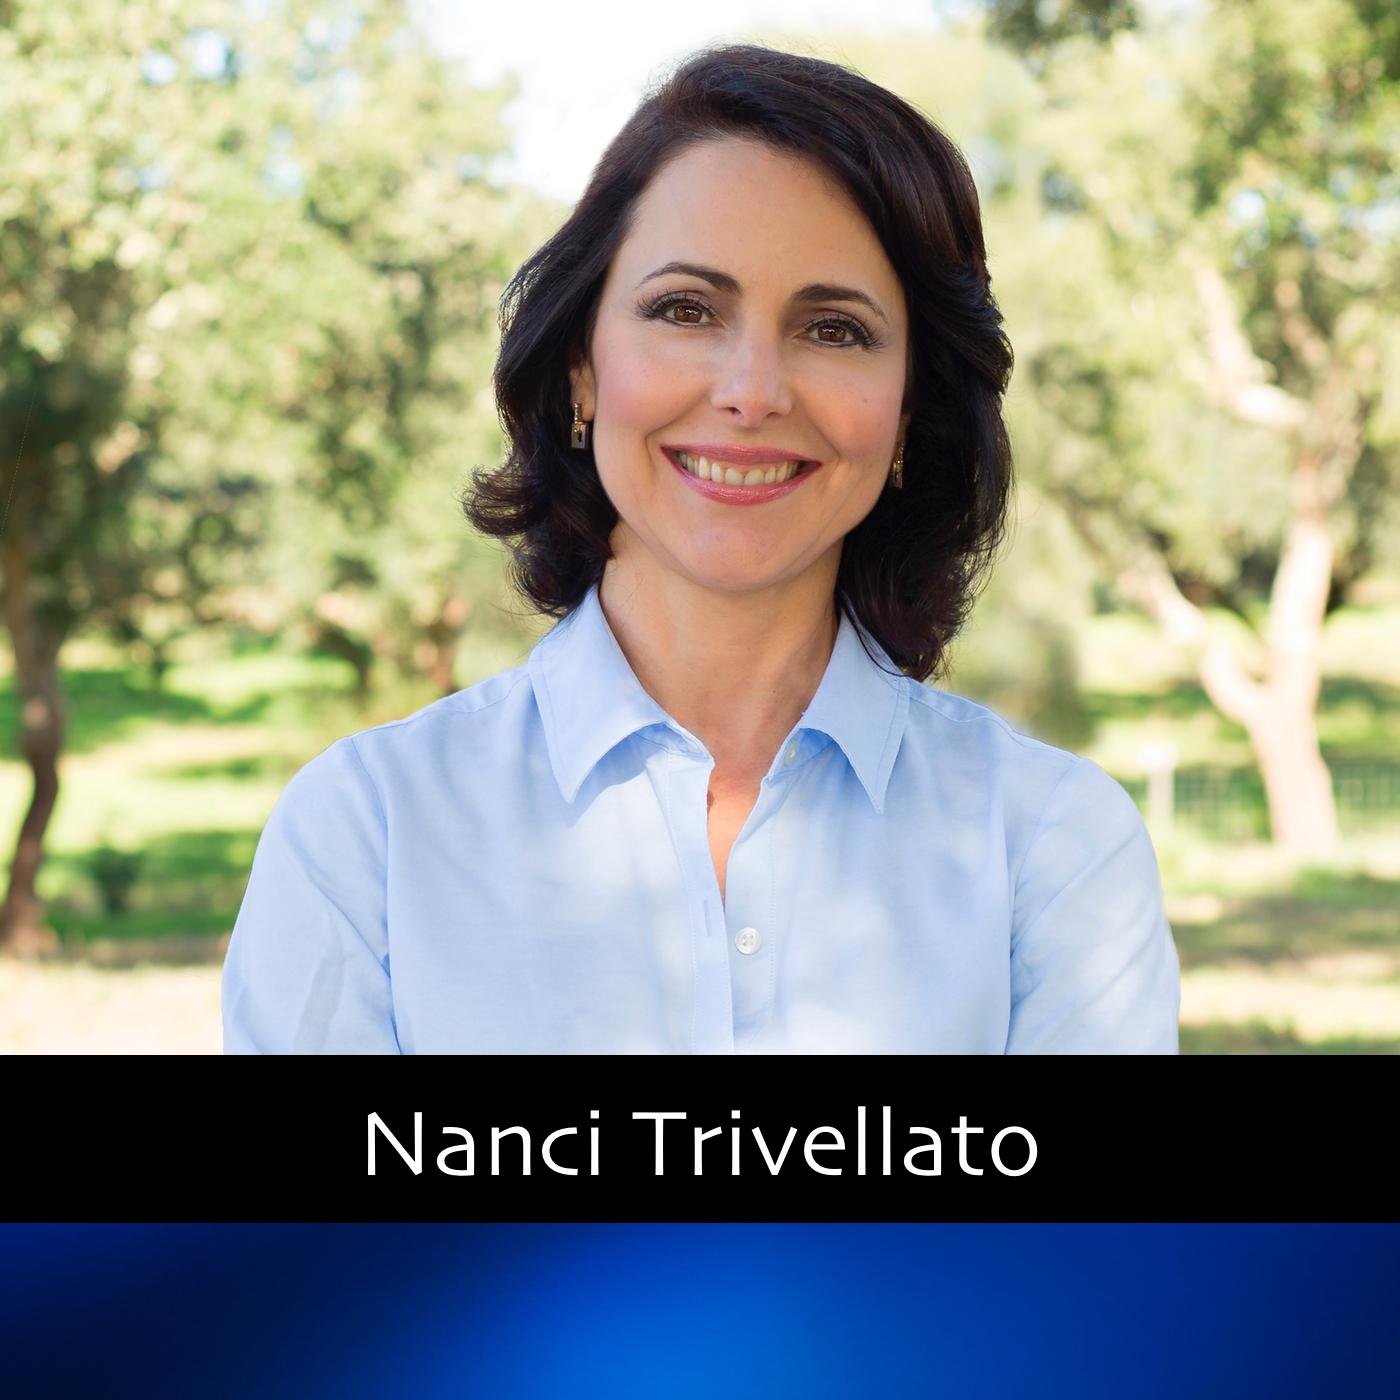 Nanci Trivellato thumb out of body astral projection.jpg